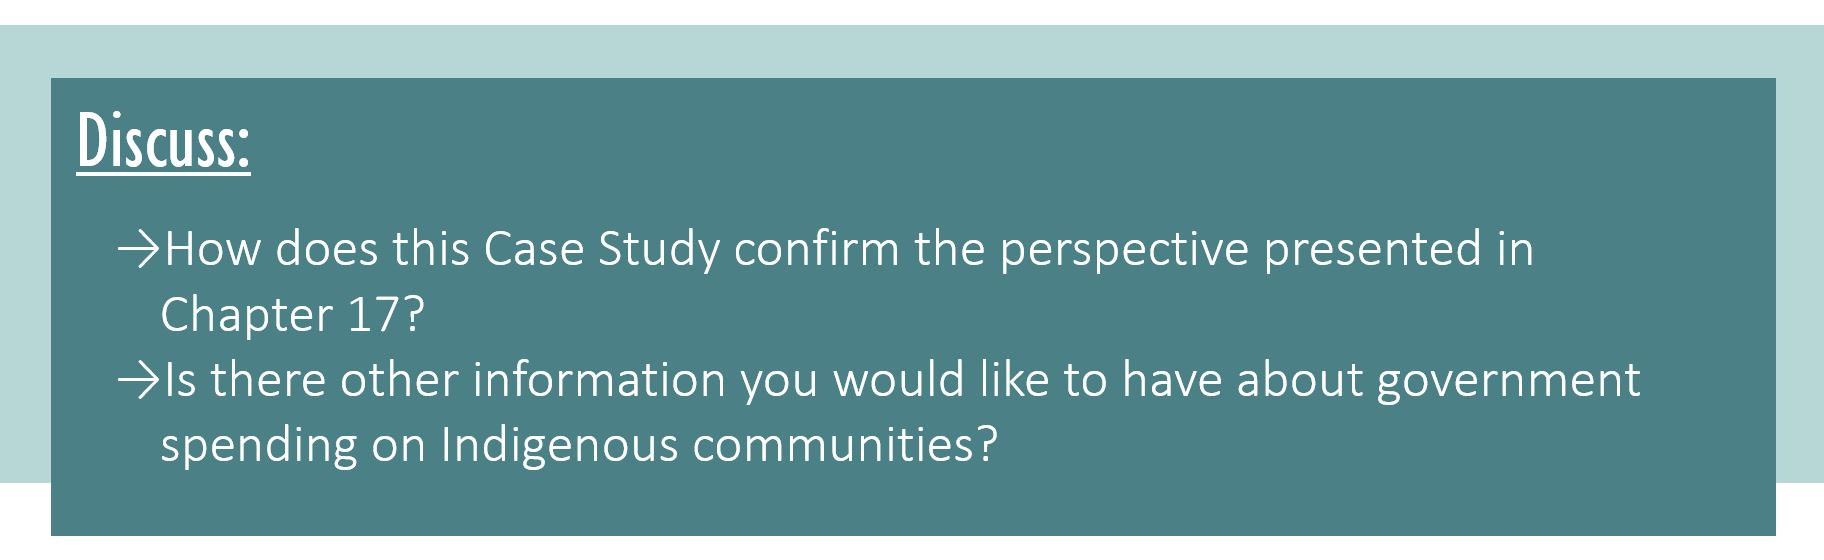 Discuss: How does this Case Study confirm the perspective presented in Chapter 17? Is there other information you would like to have about government spending on Indigenous communities?